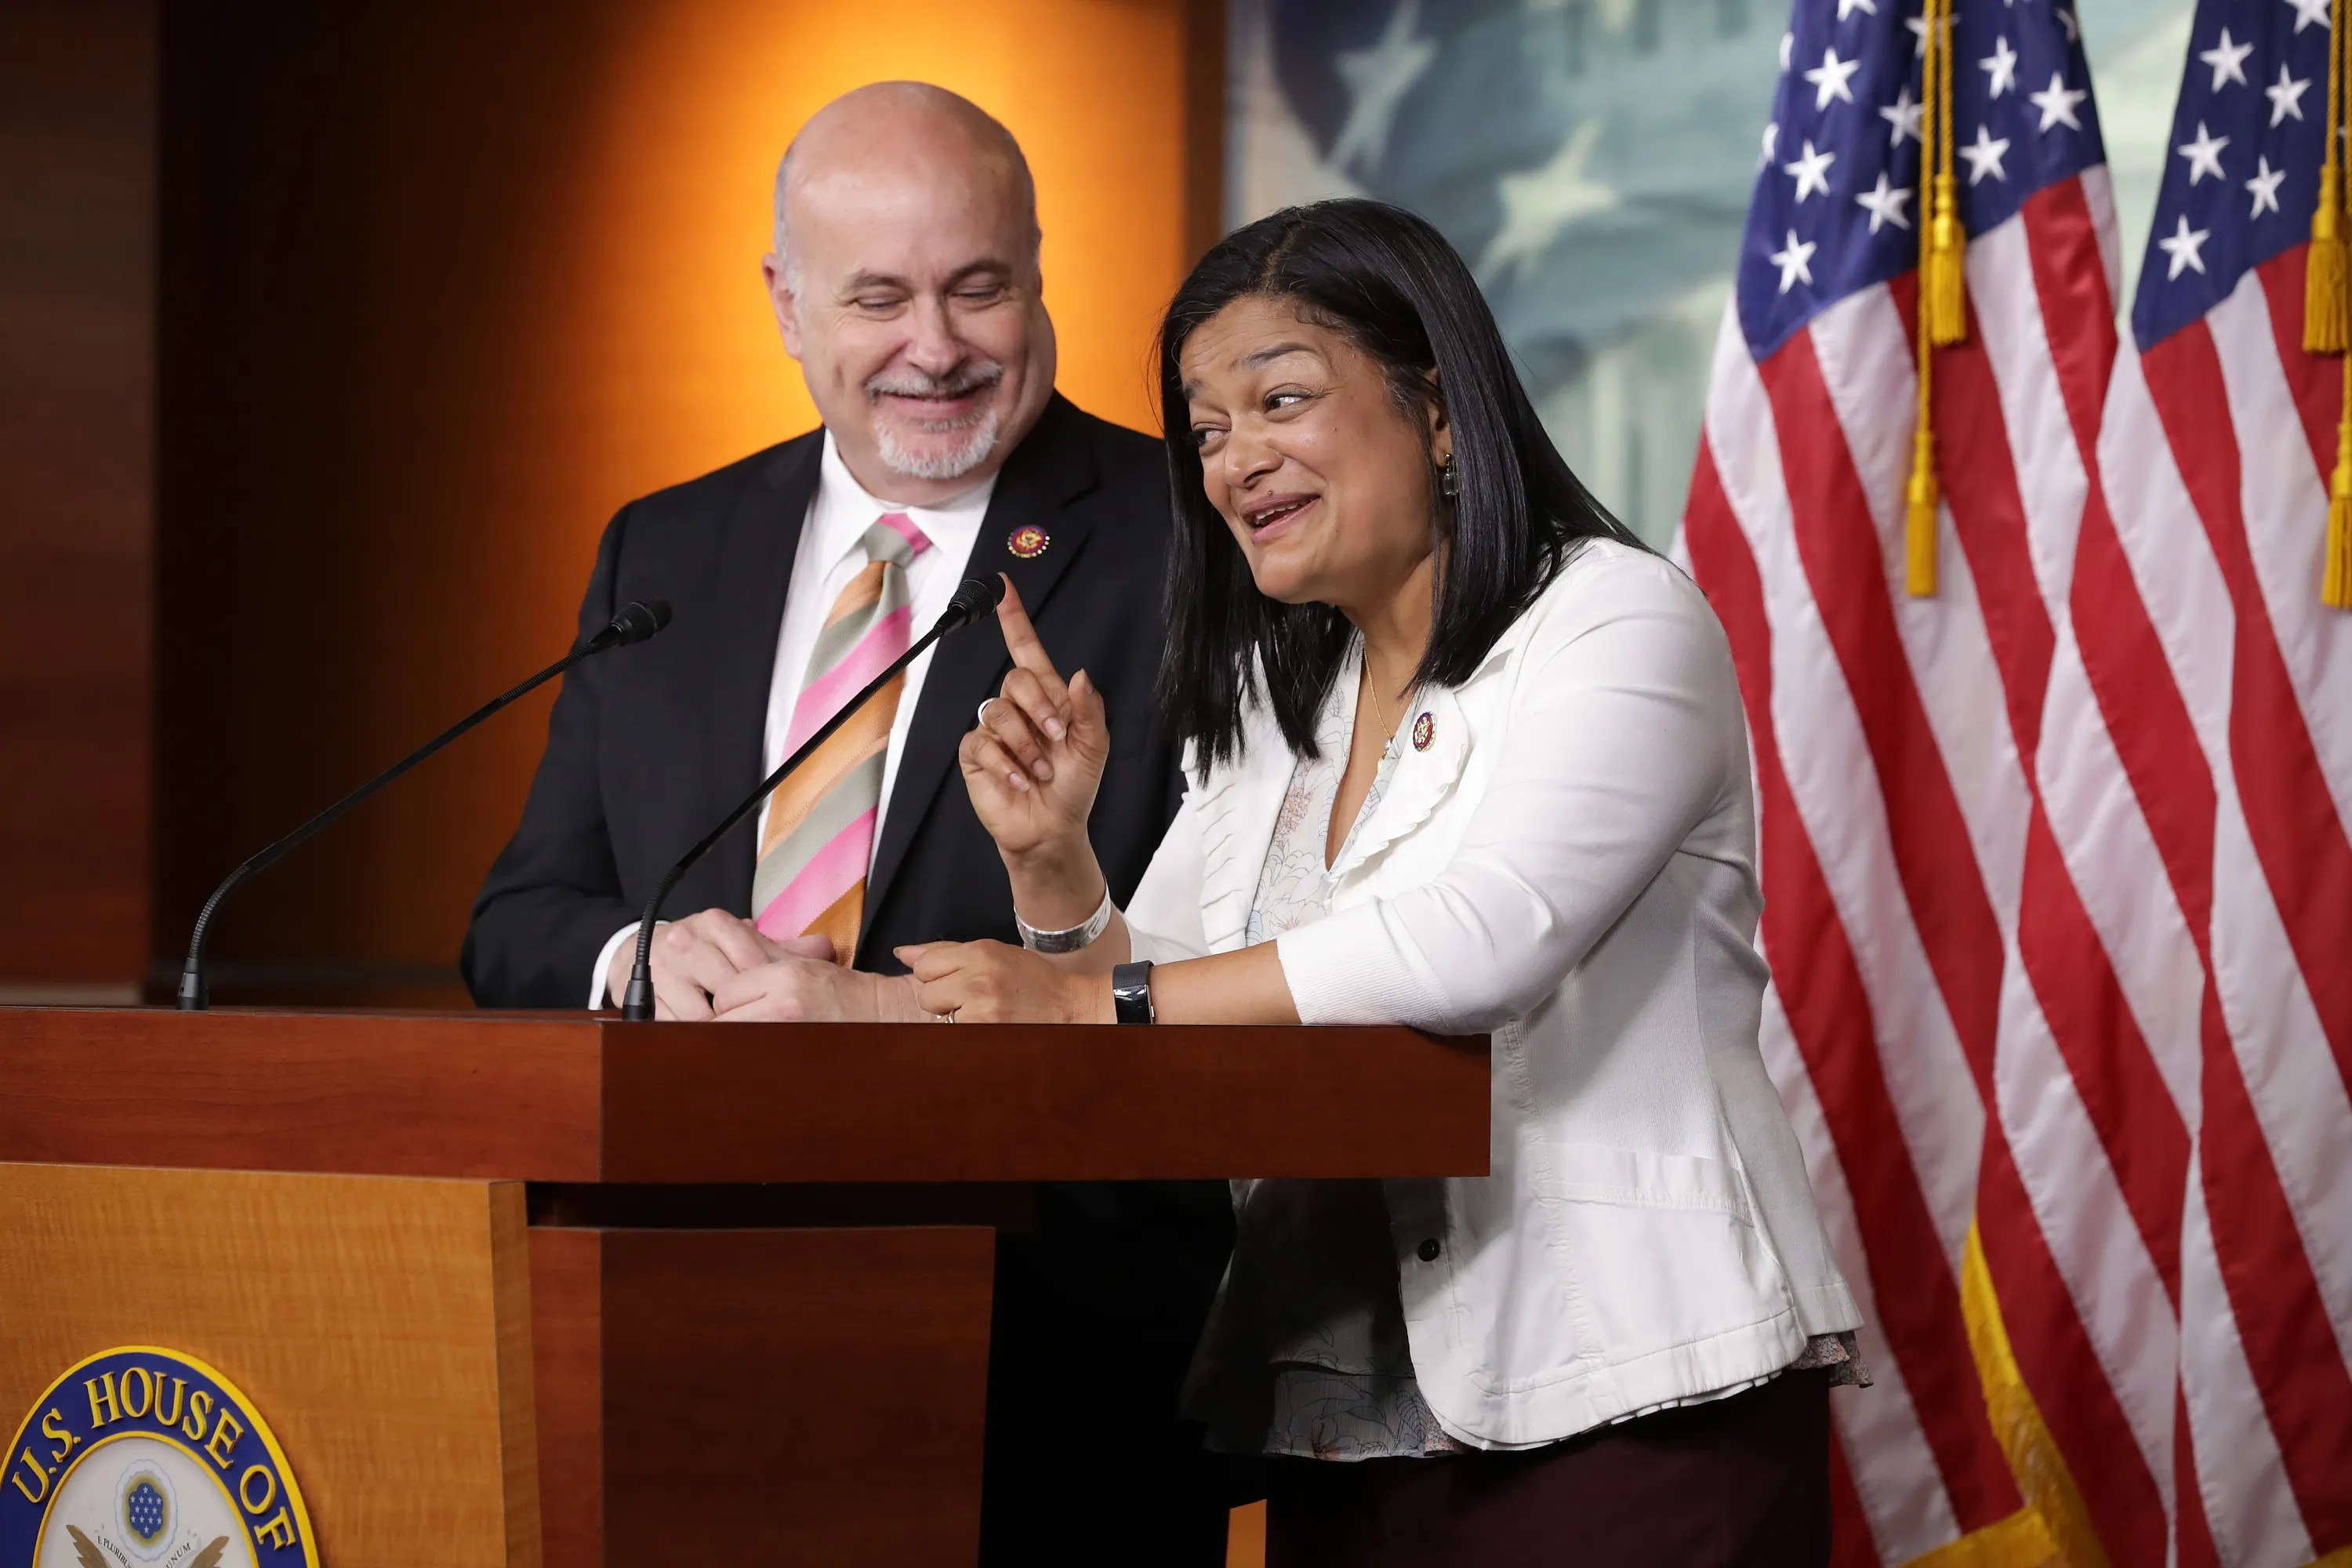 Representatives Pramila Jayapal, D-Wash., And Mark Pocan, D-Wis., Are co-chairs of the Congressional Progressive Caucus.